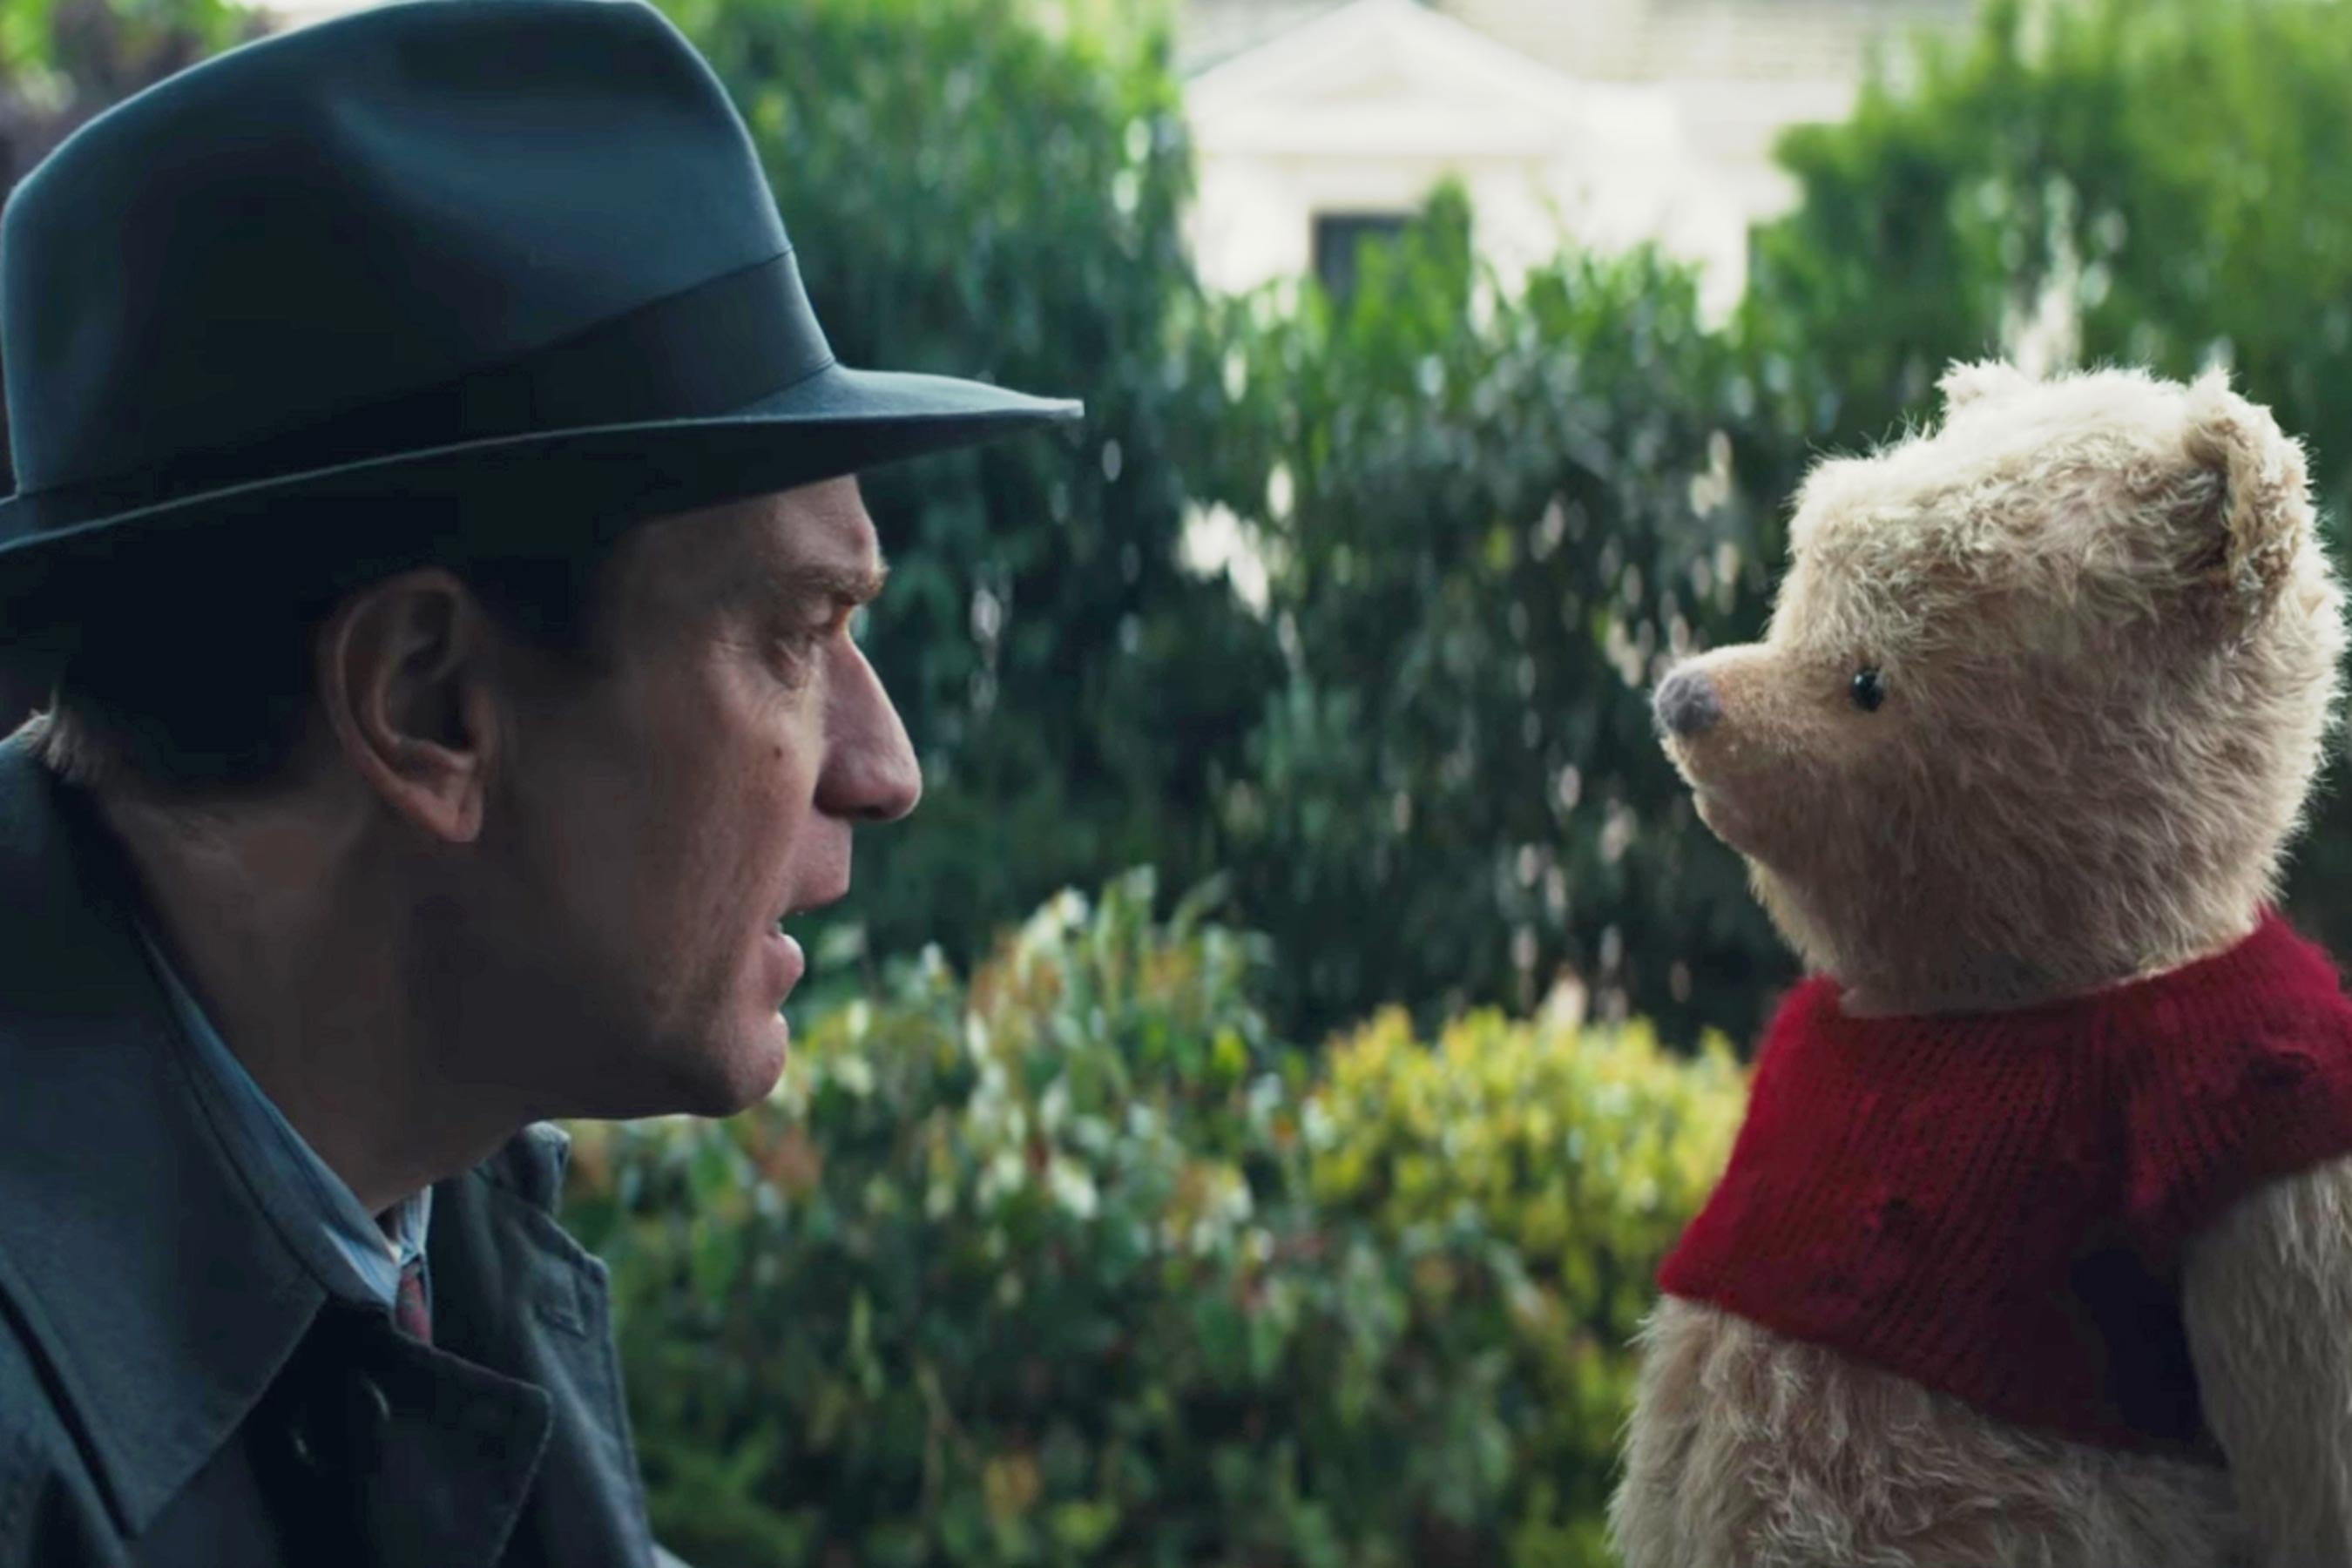 Disney's Christopher Robin trailer: Winnie the Pooh visits old friend in first footage